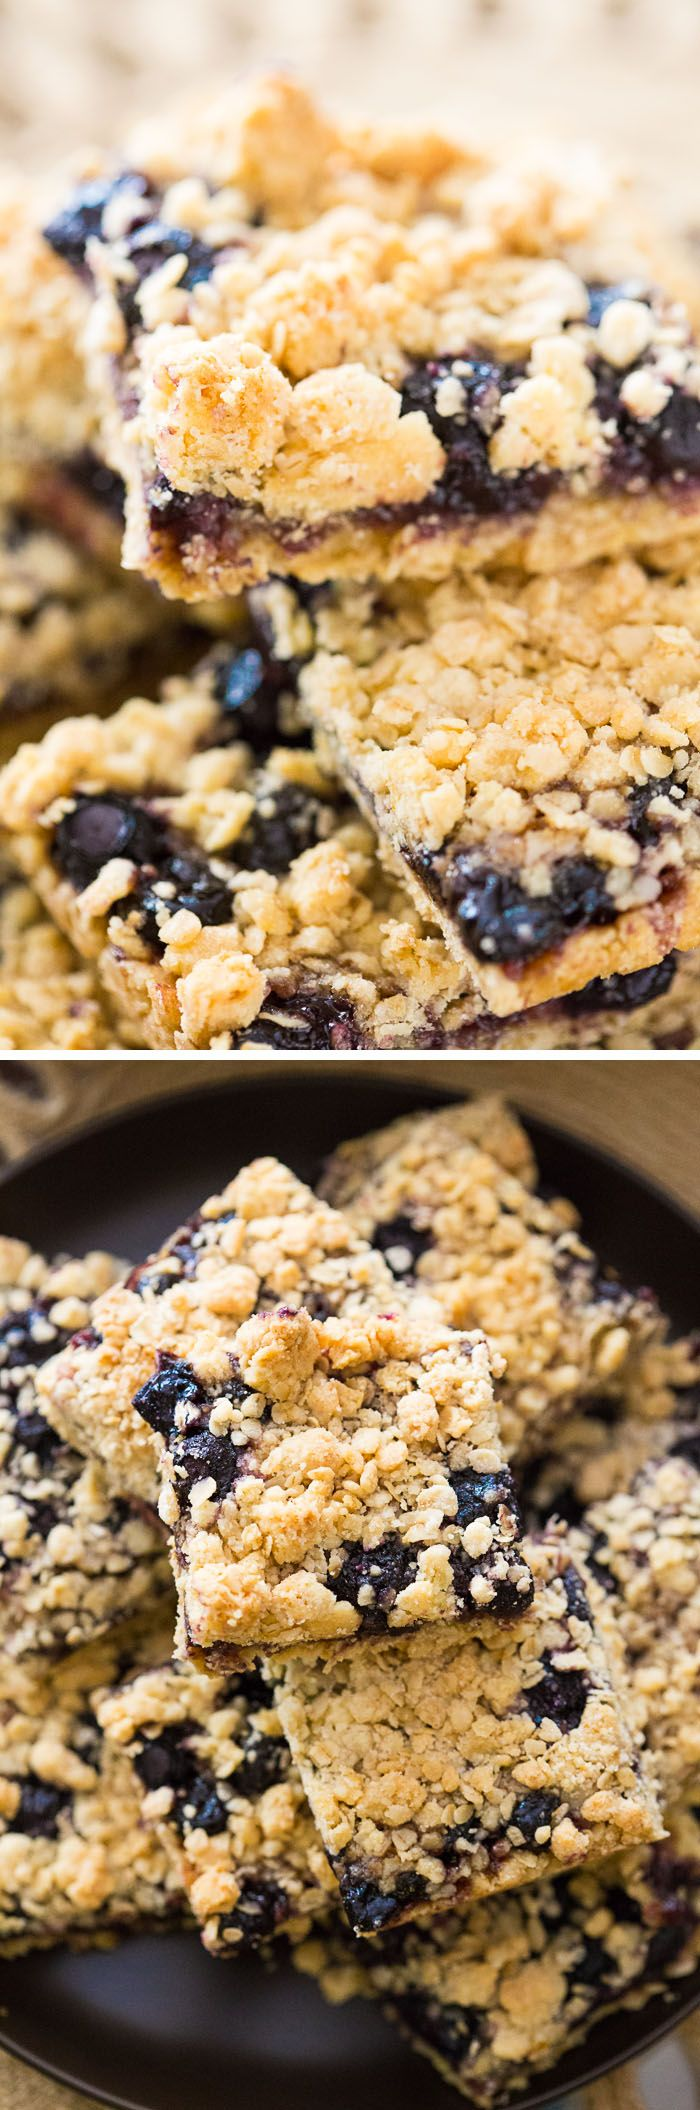 These Blueberry Oatmeal Bars are so quick and easy to whip up and so buttery and delicious! Use any flavor of preserves to make this simple dessert.